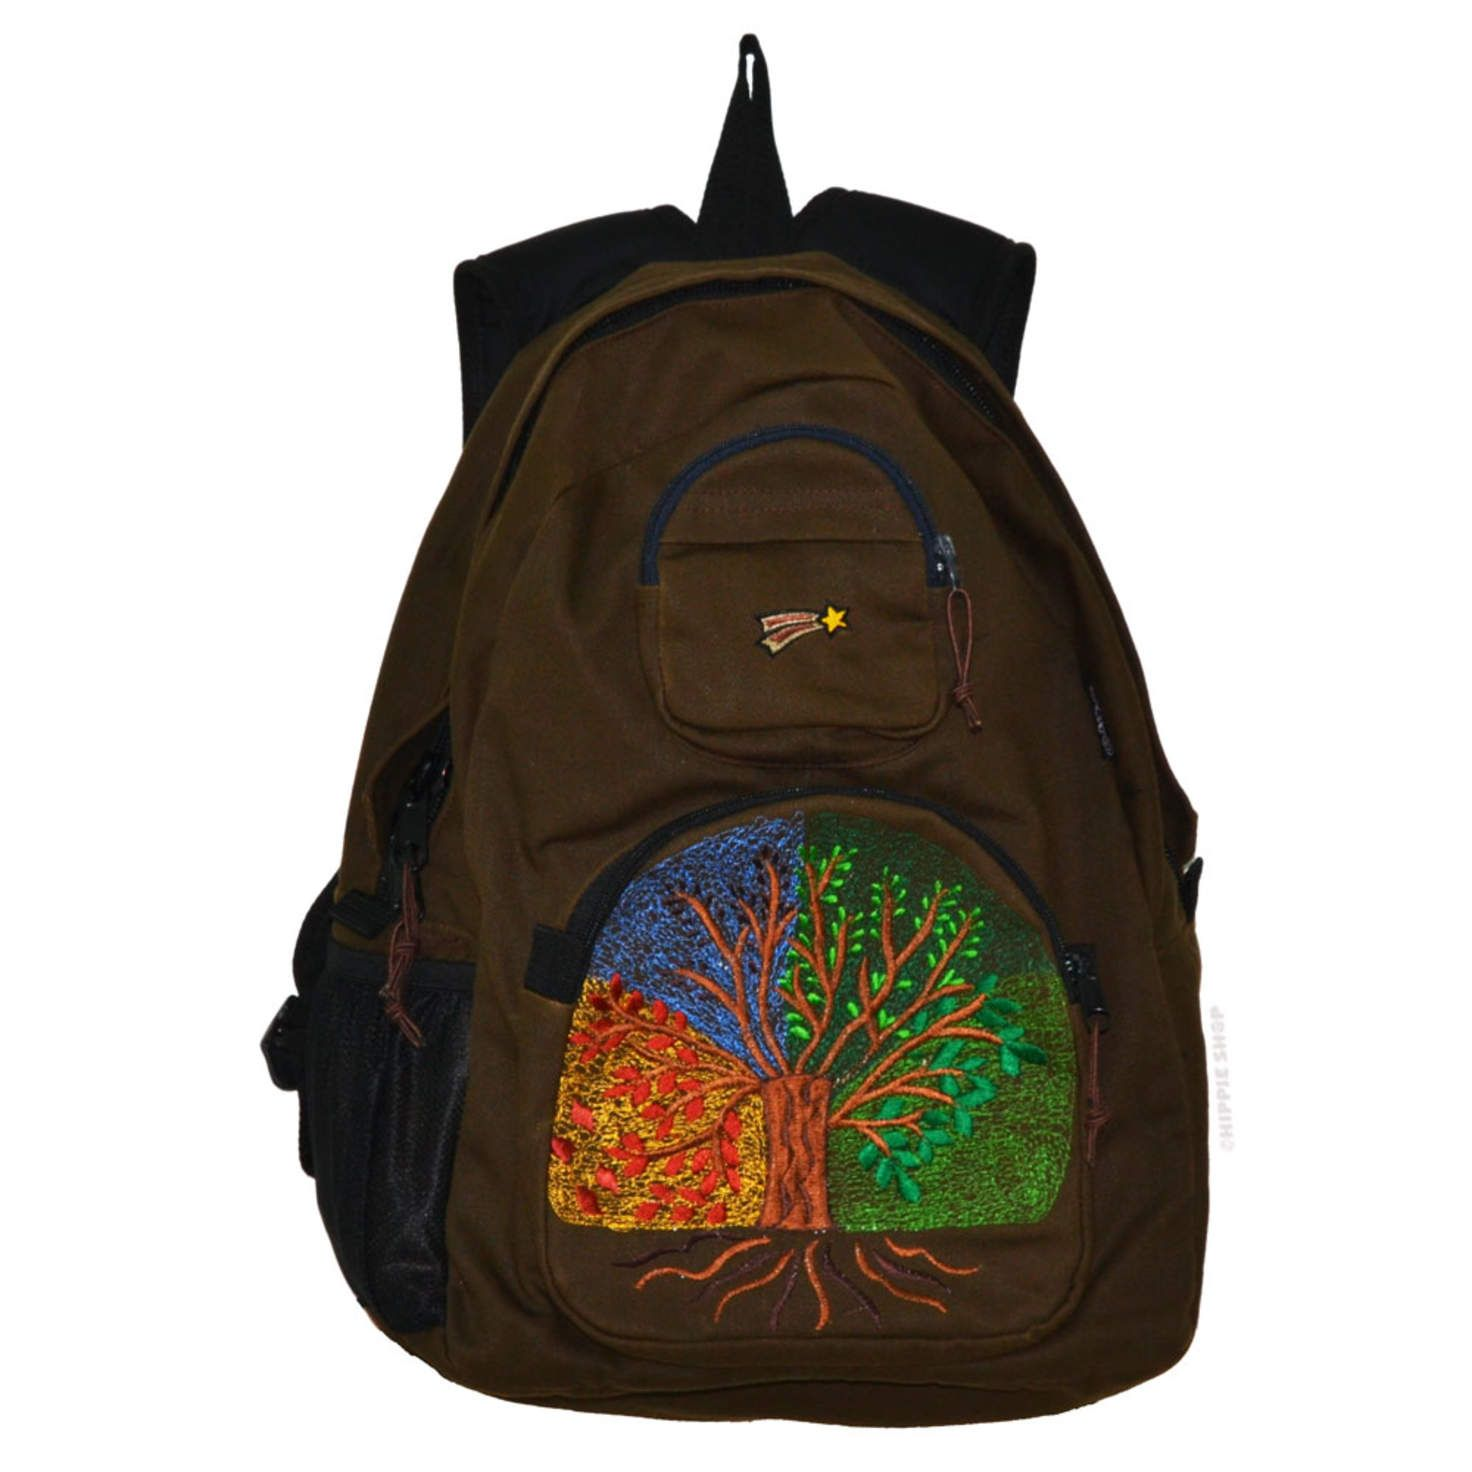 Four Seasons Backpack On Sale For 59 99 At Hippieshop